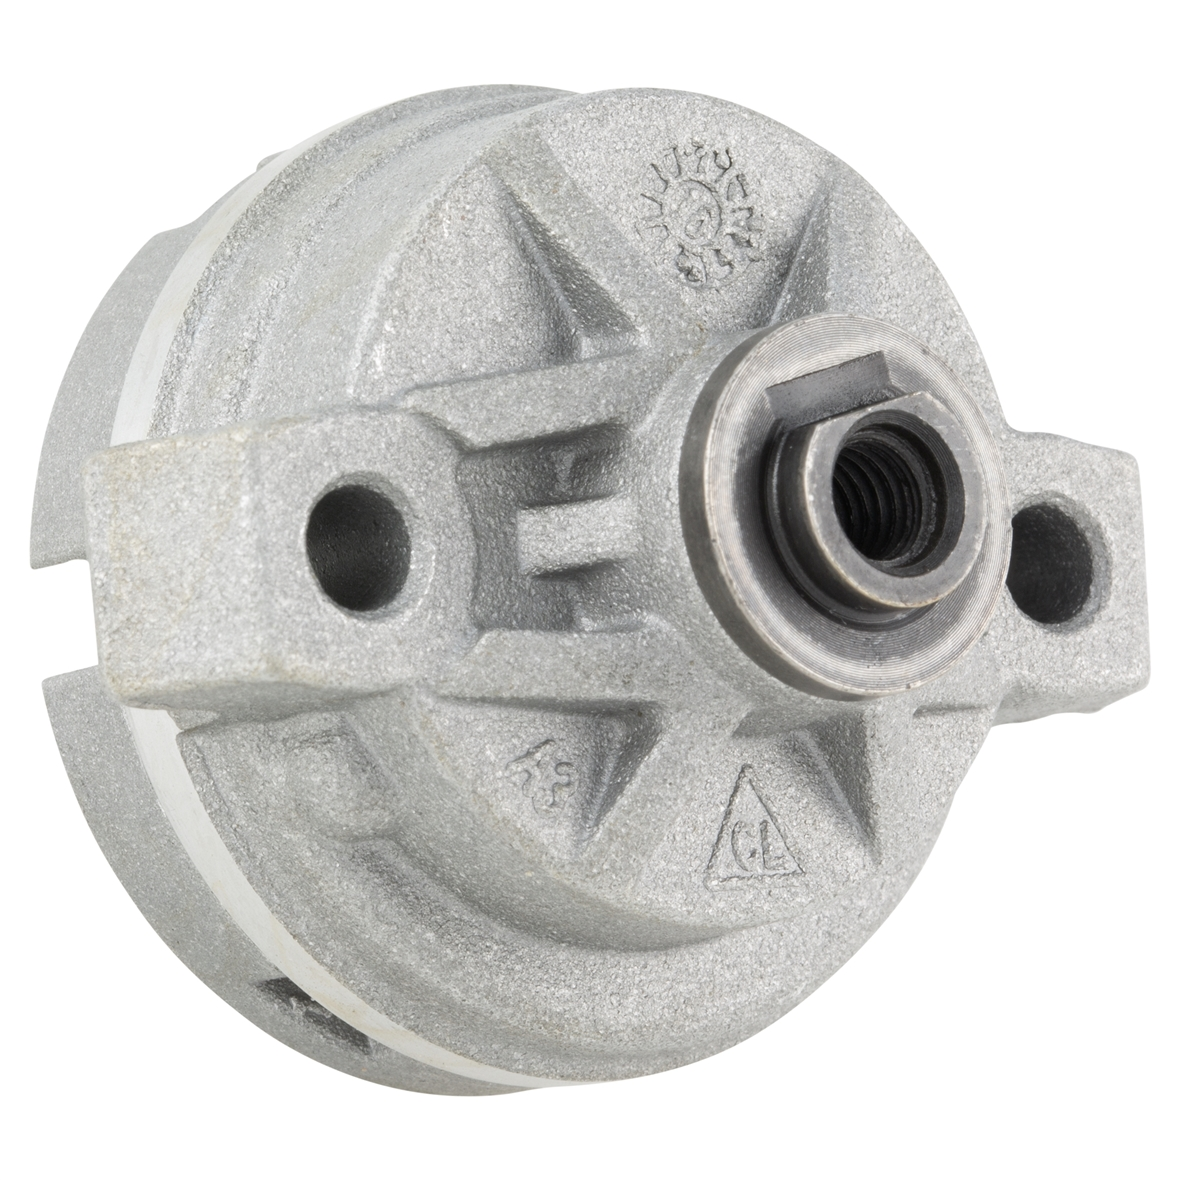 Product image for 'Oil Pump PIAGGIOTitle'